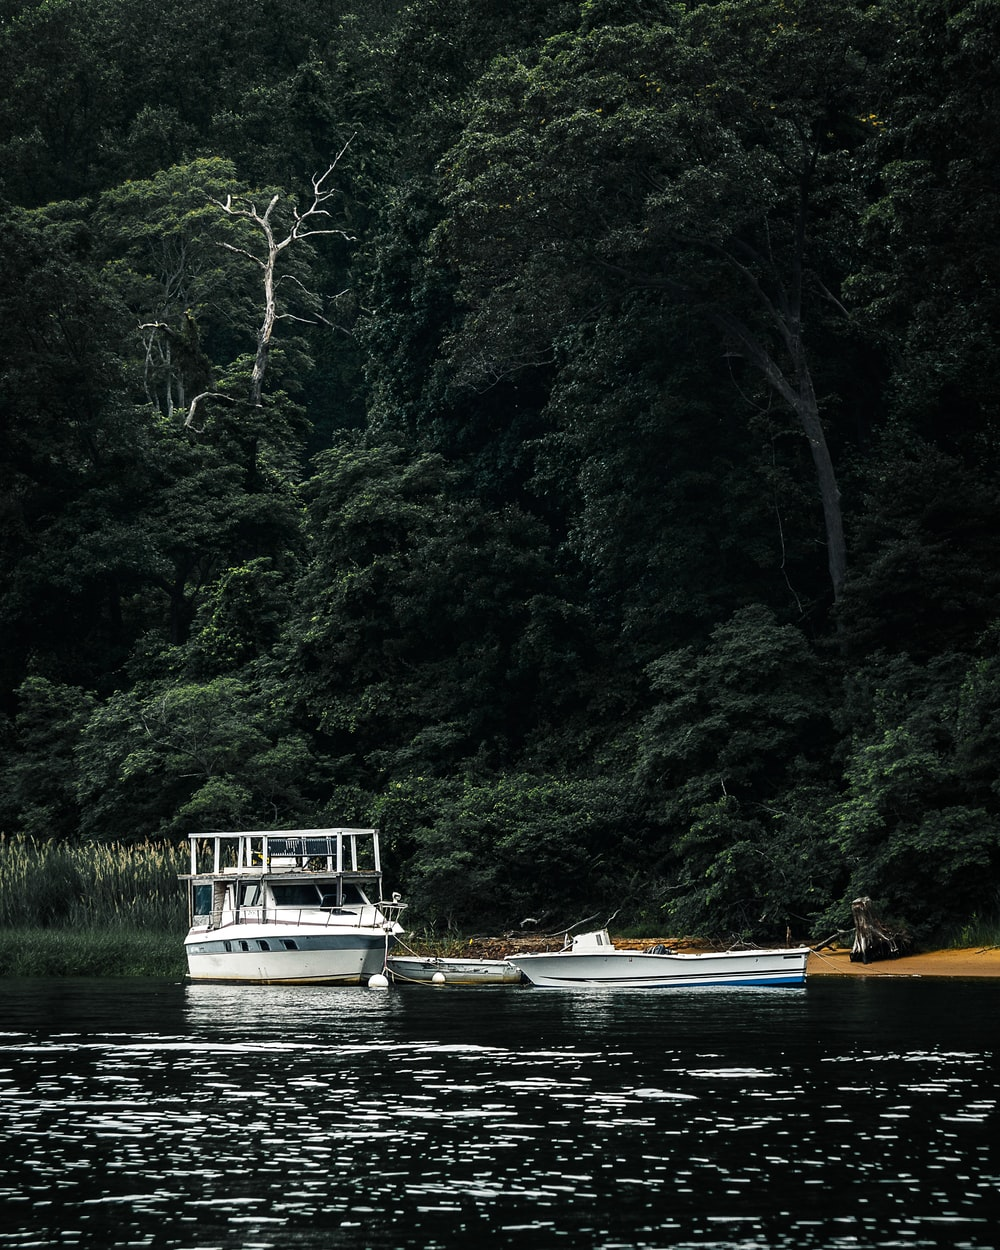 white and brown boat on river during daytime